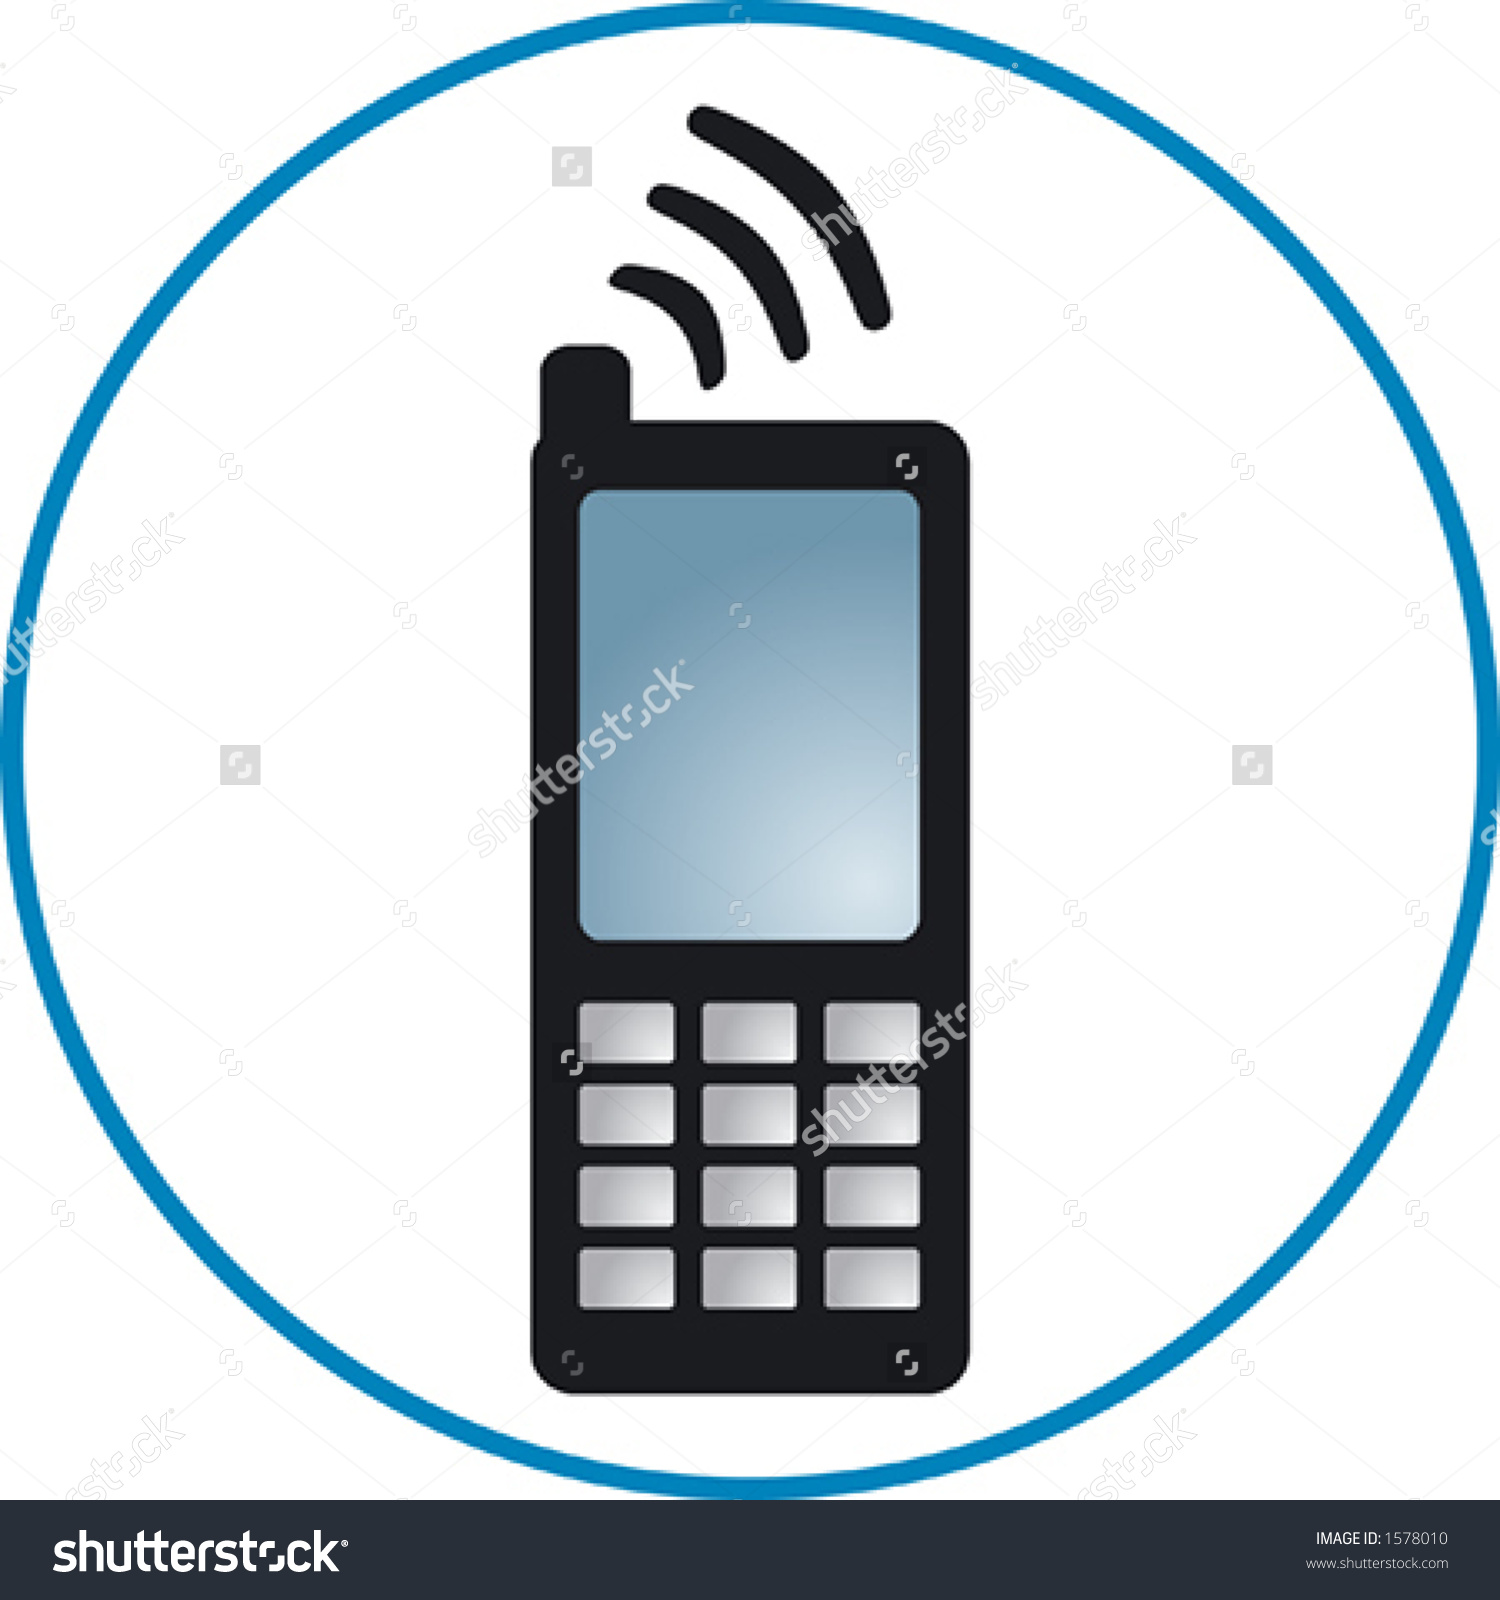 Cellphone clipart - Clipground